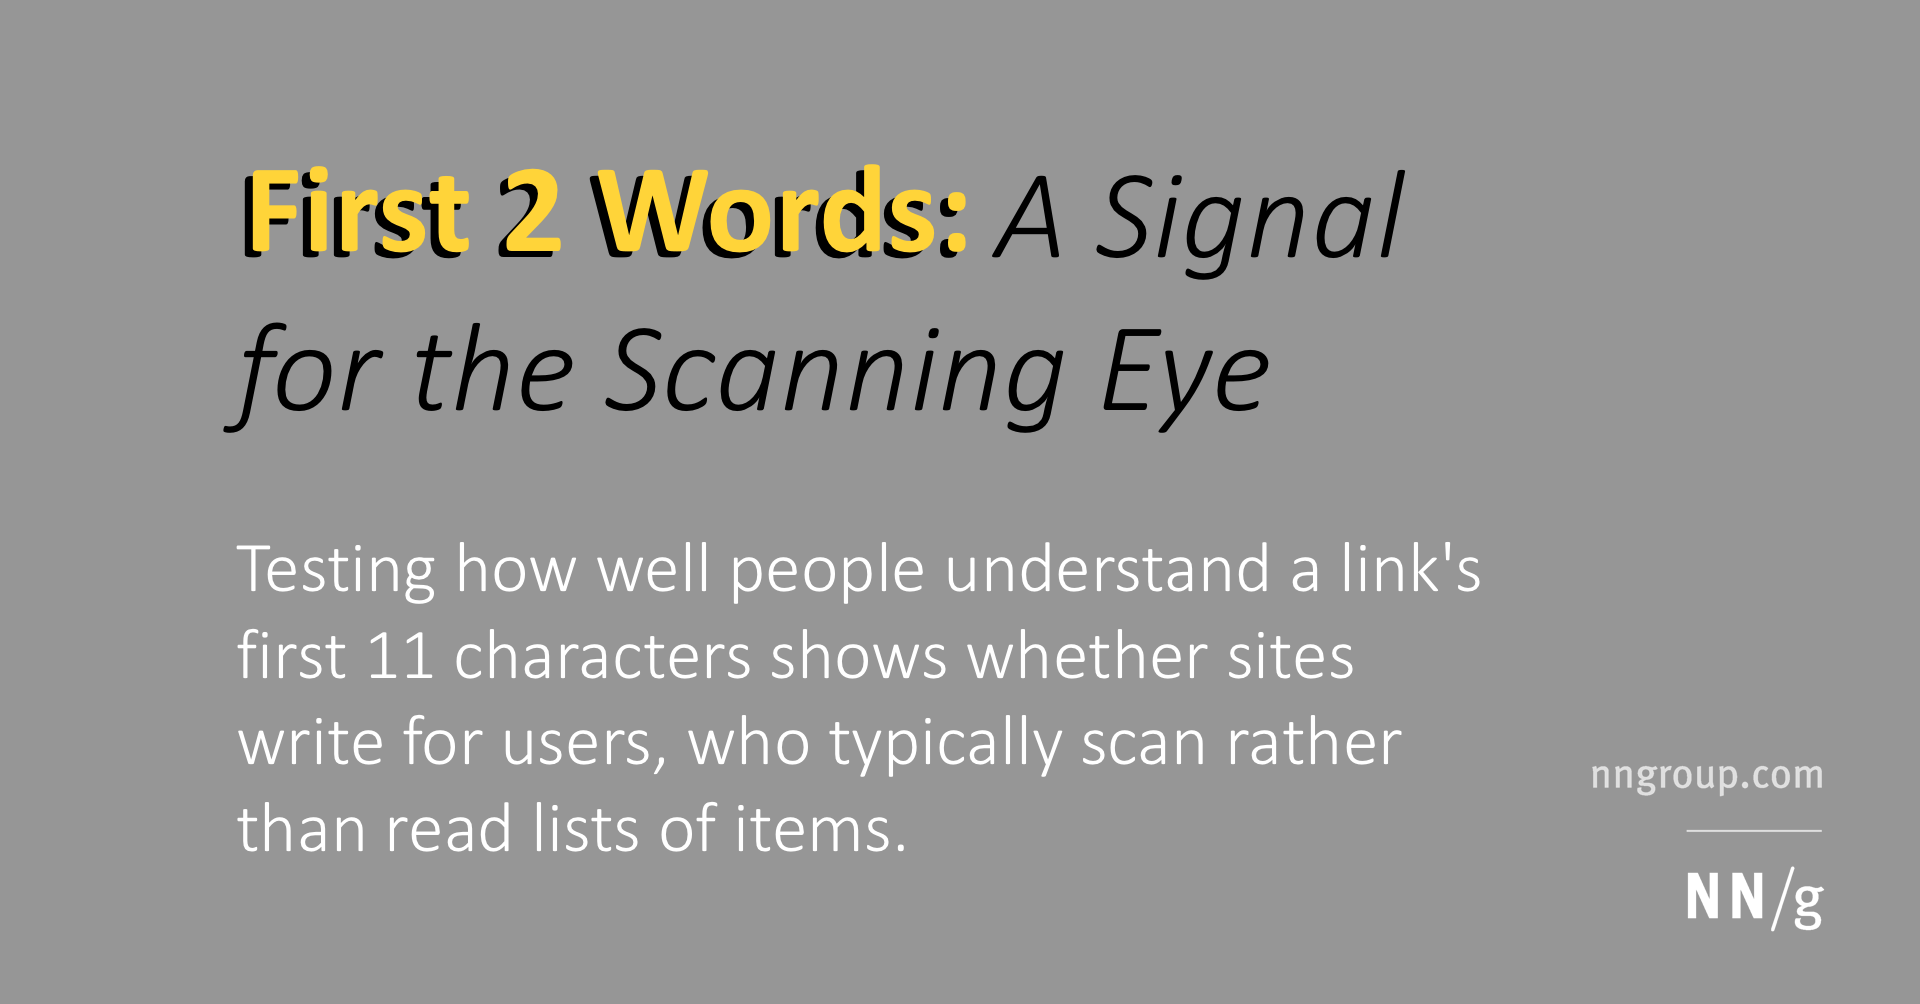 First 2 Words: A Signal for the Scanning Eye